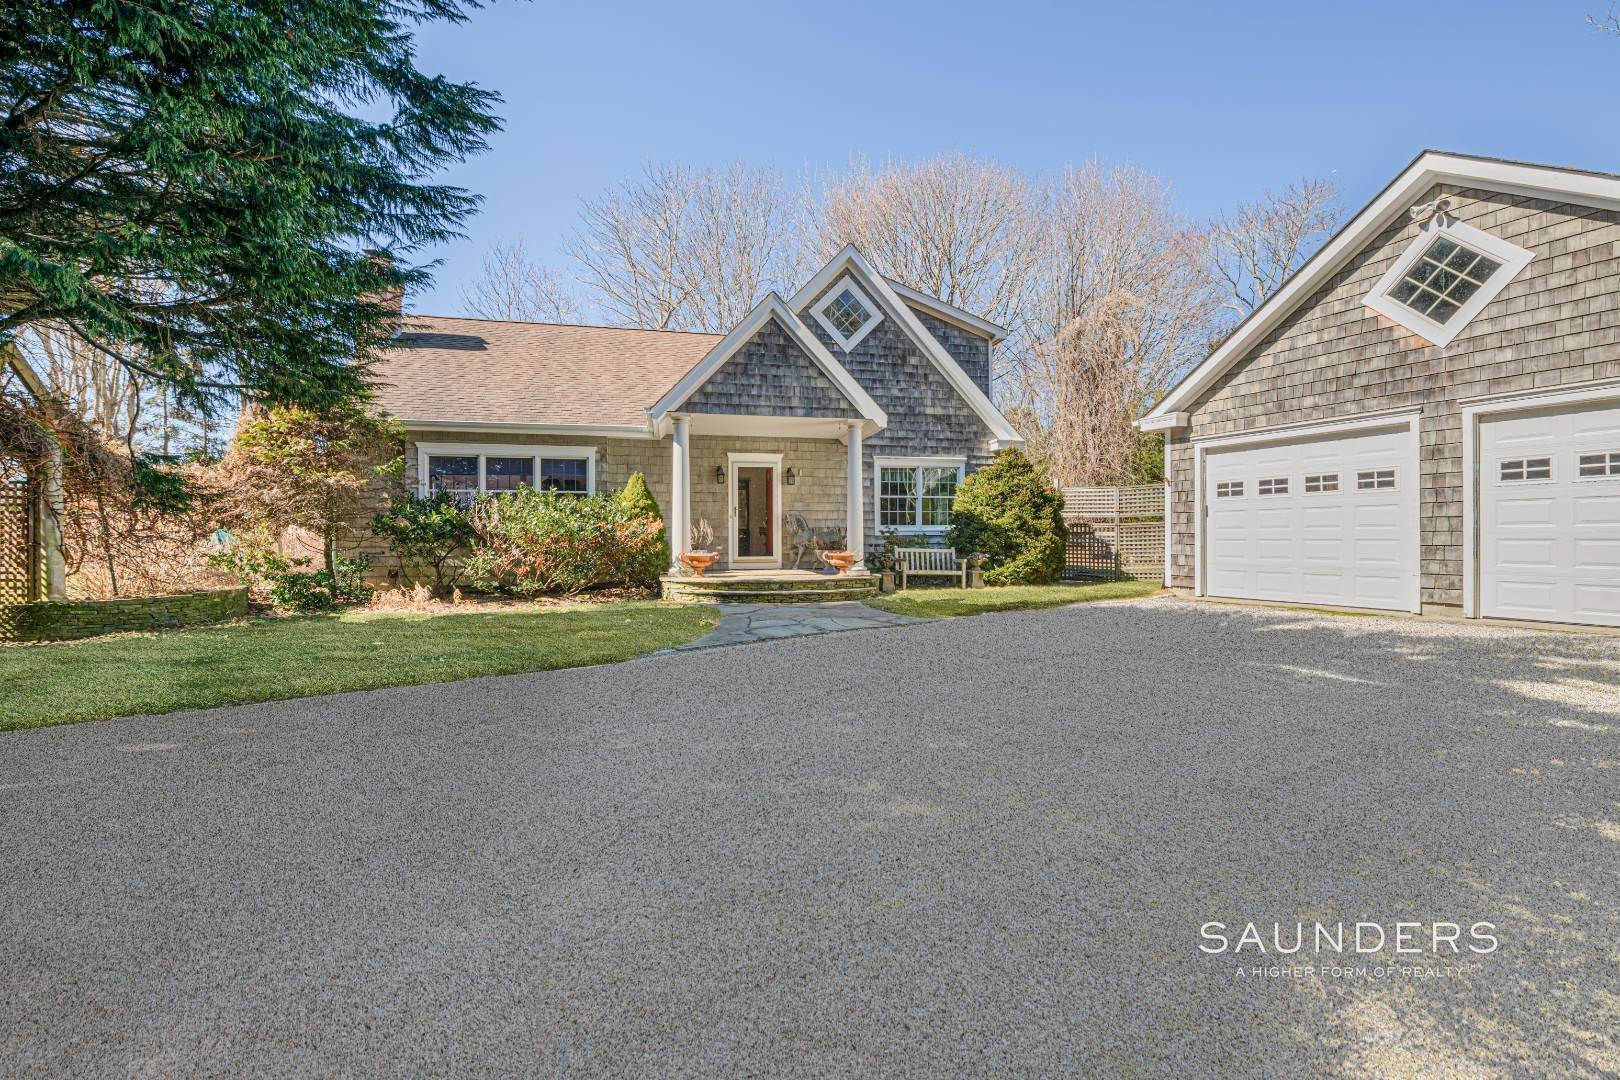 Single Family Homes for Sale at Village Fringe Beauty 73 Accabonac Road, East Hampton, East Hampton Town, NY 11937